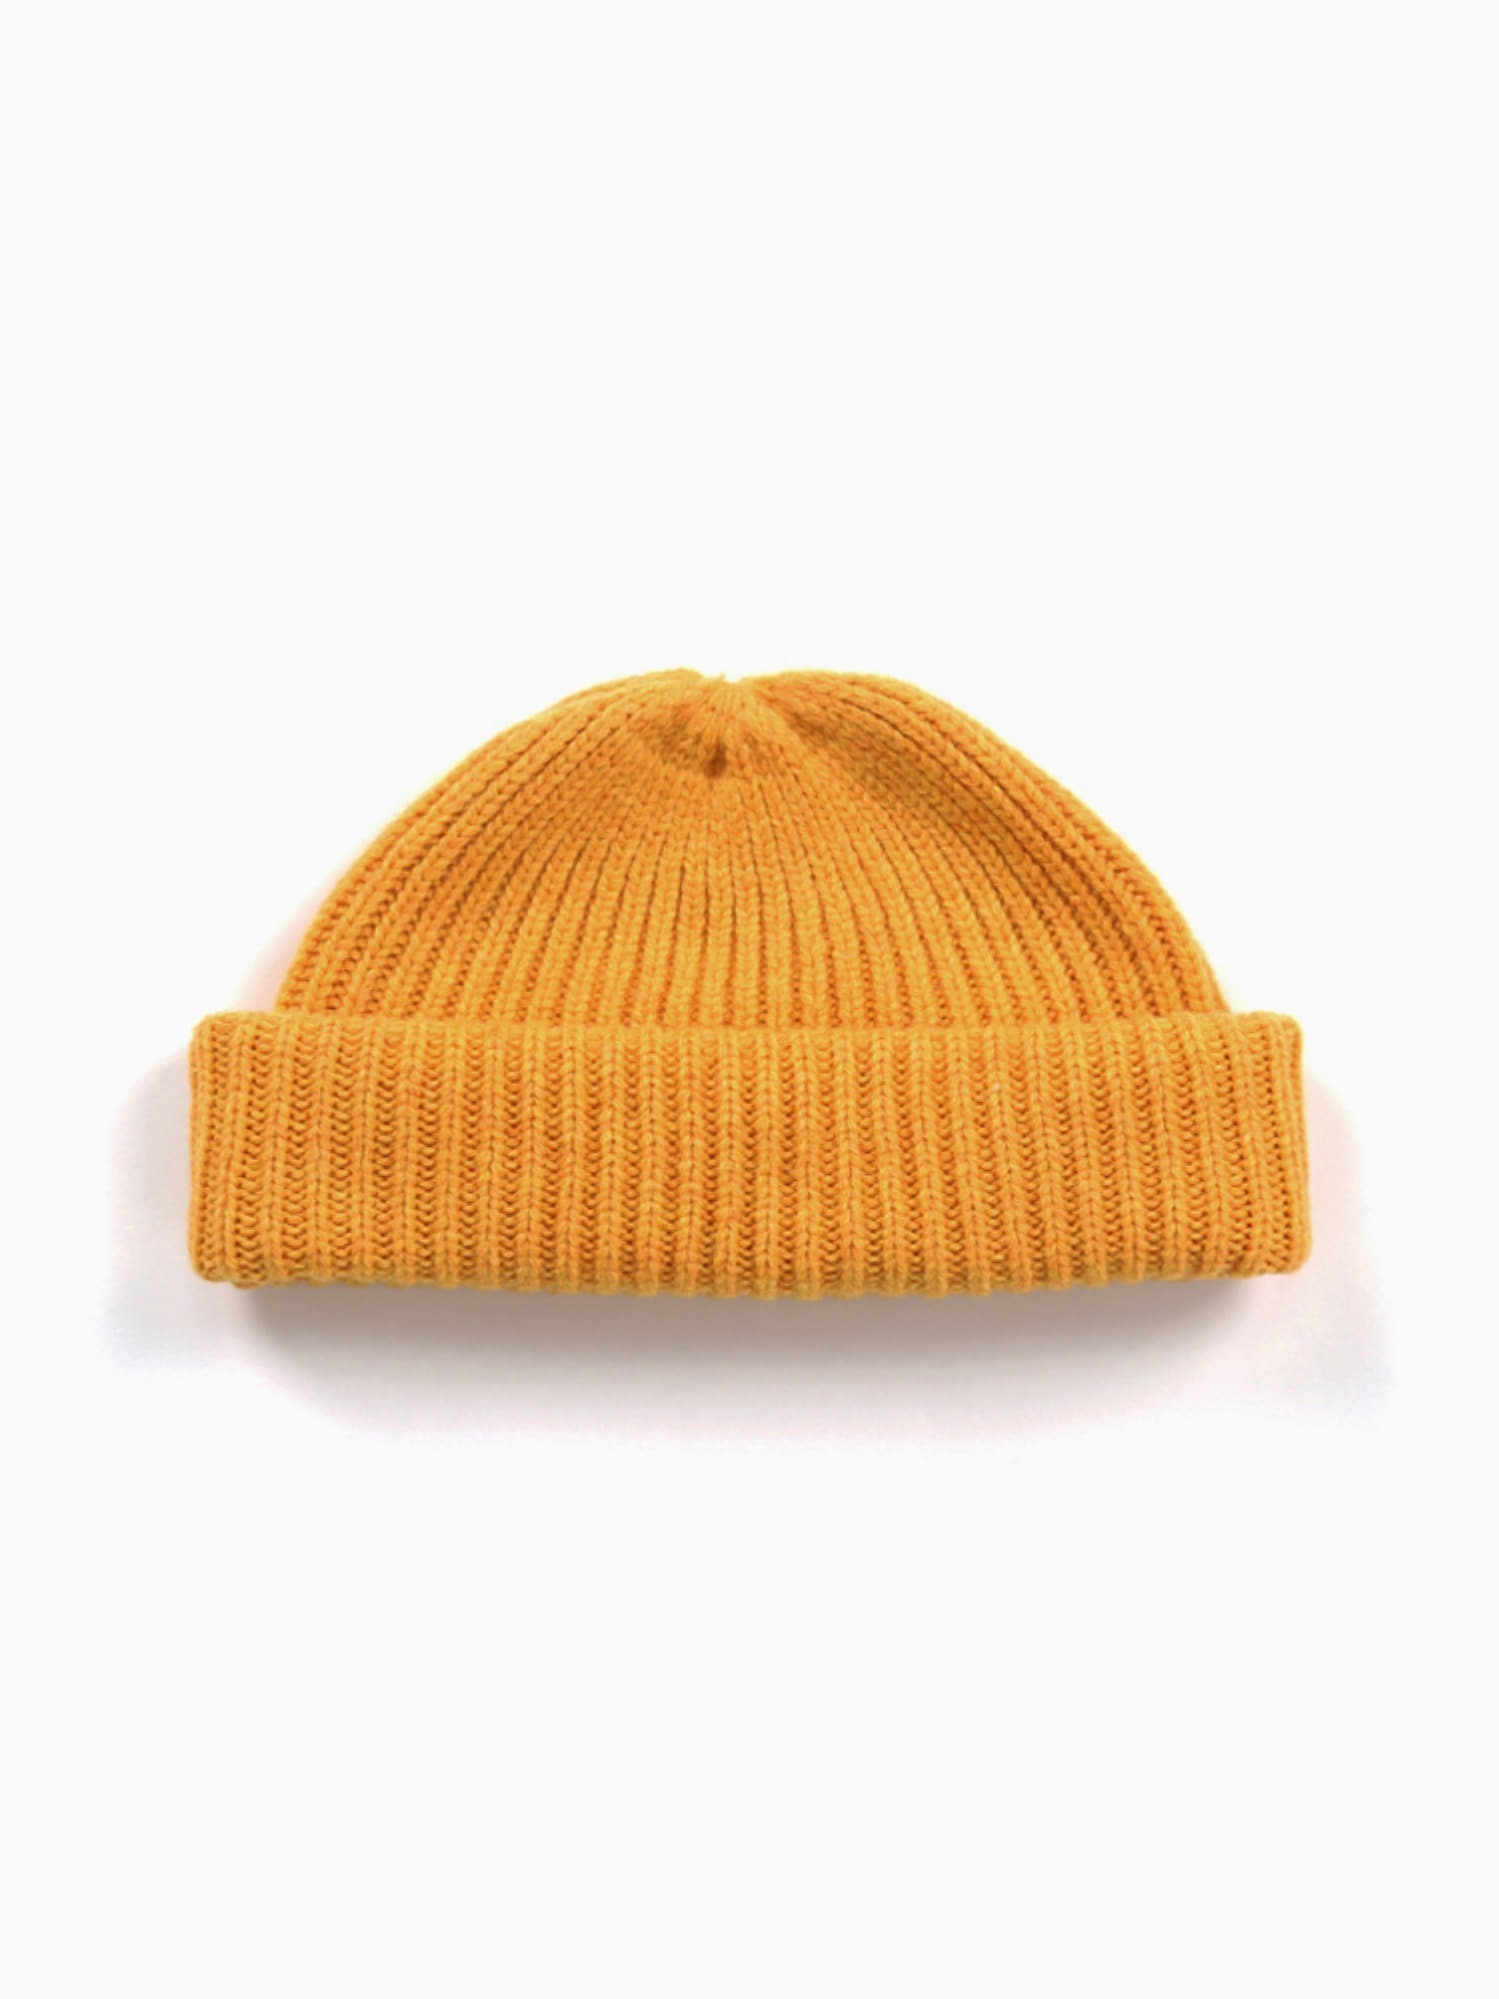 [inch_inch_beanie] 재입고 Lambs-wool mustard yellow : season2